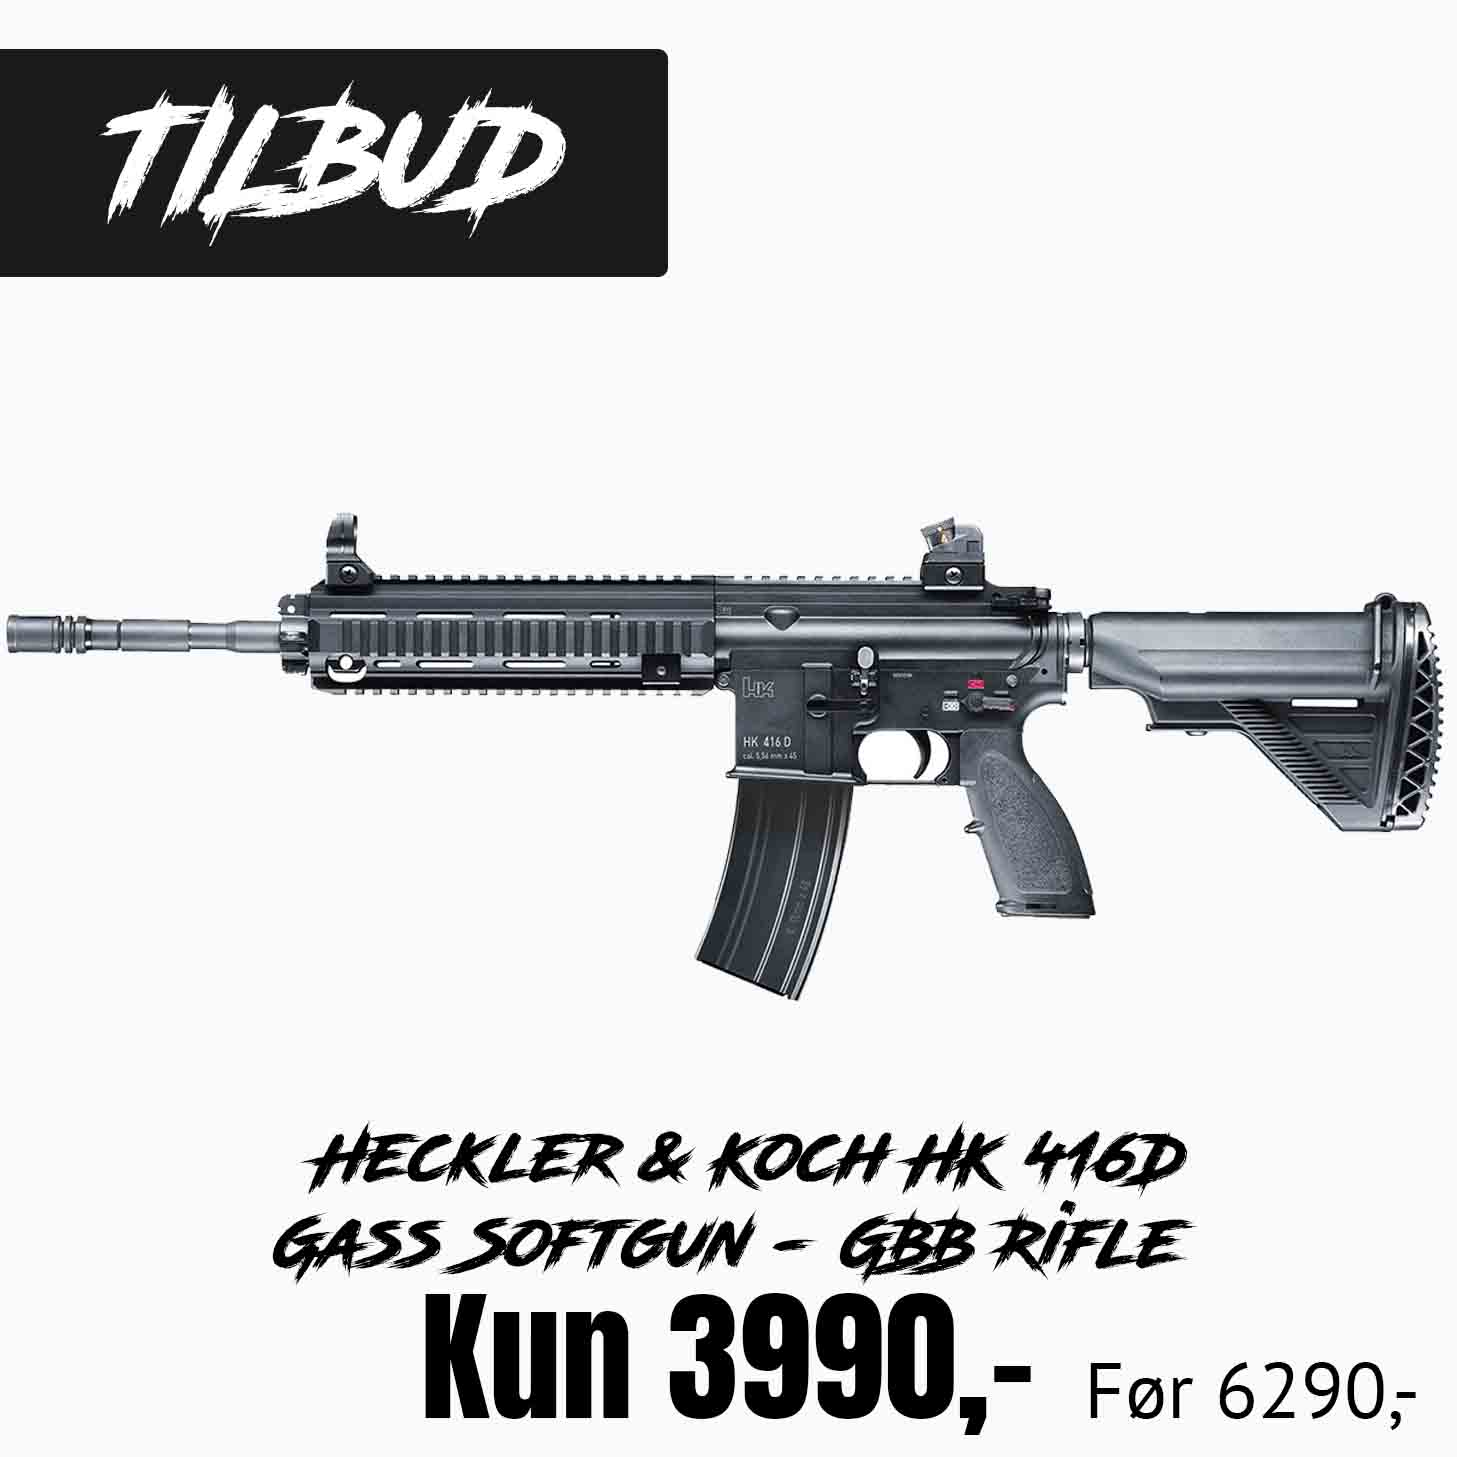 Heckler & Koch HK 416D Gass Softgun - GBB Rifle